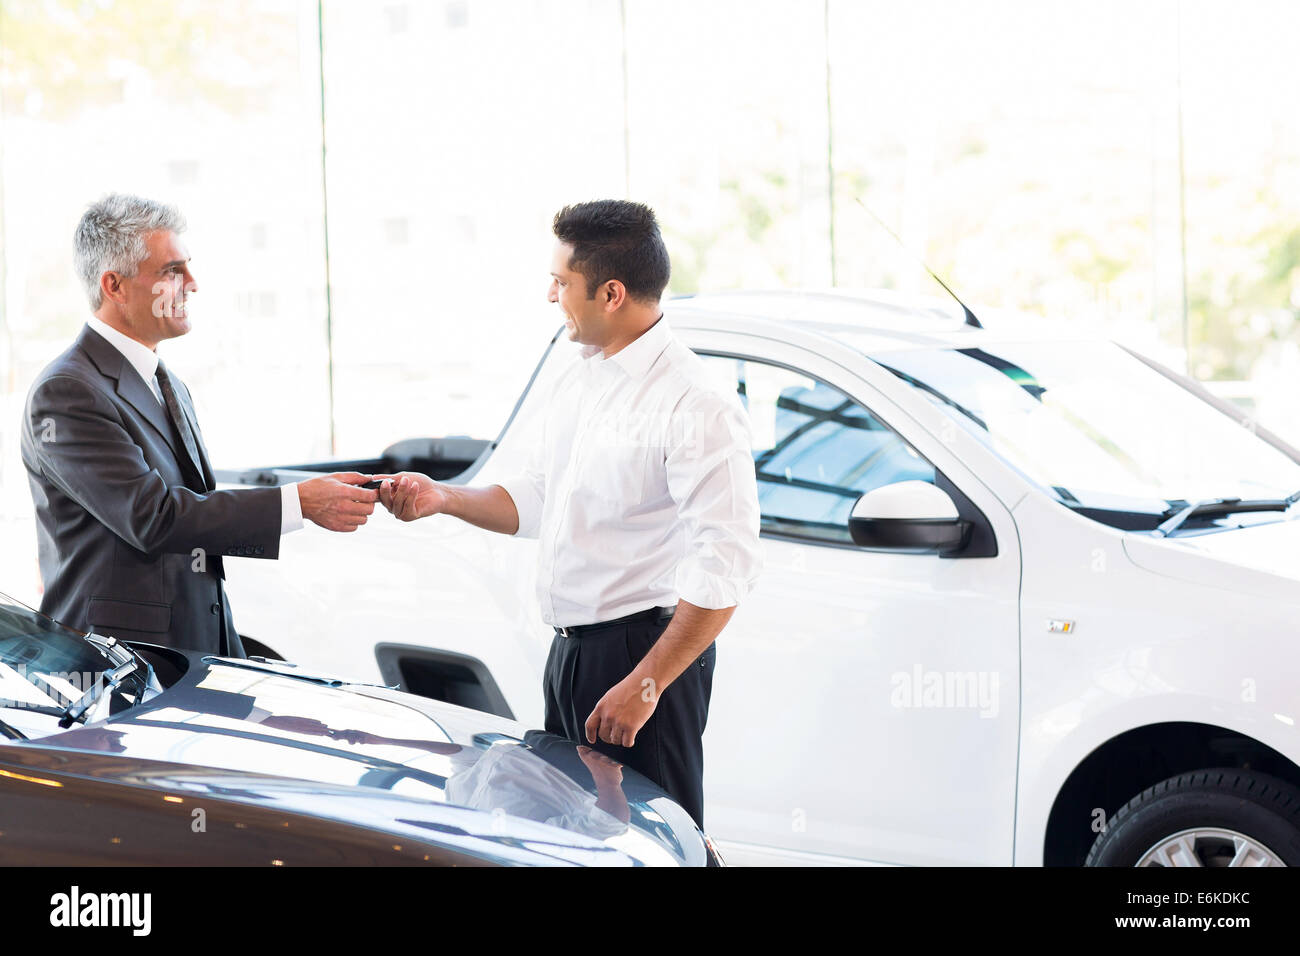 senior car salesman handing over new car key to customer at showroom - Stock Image